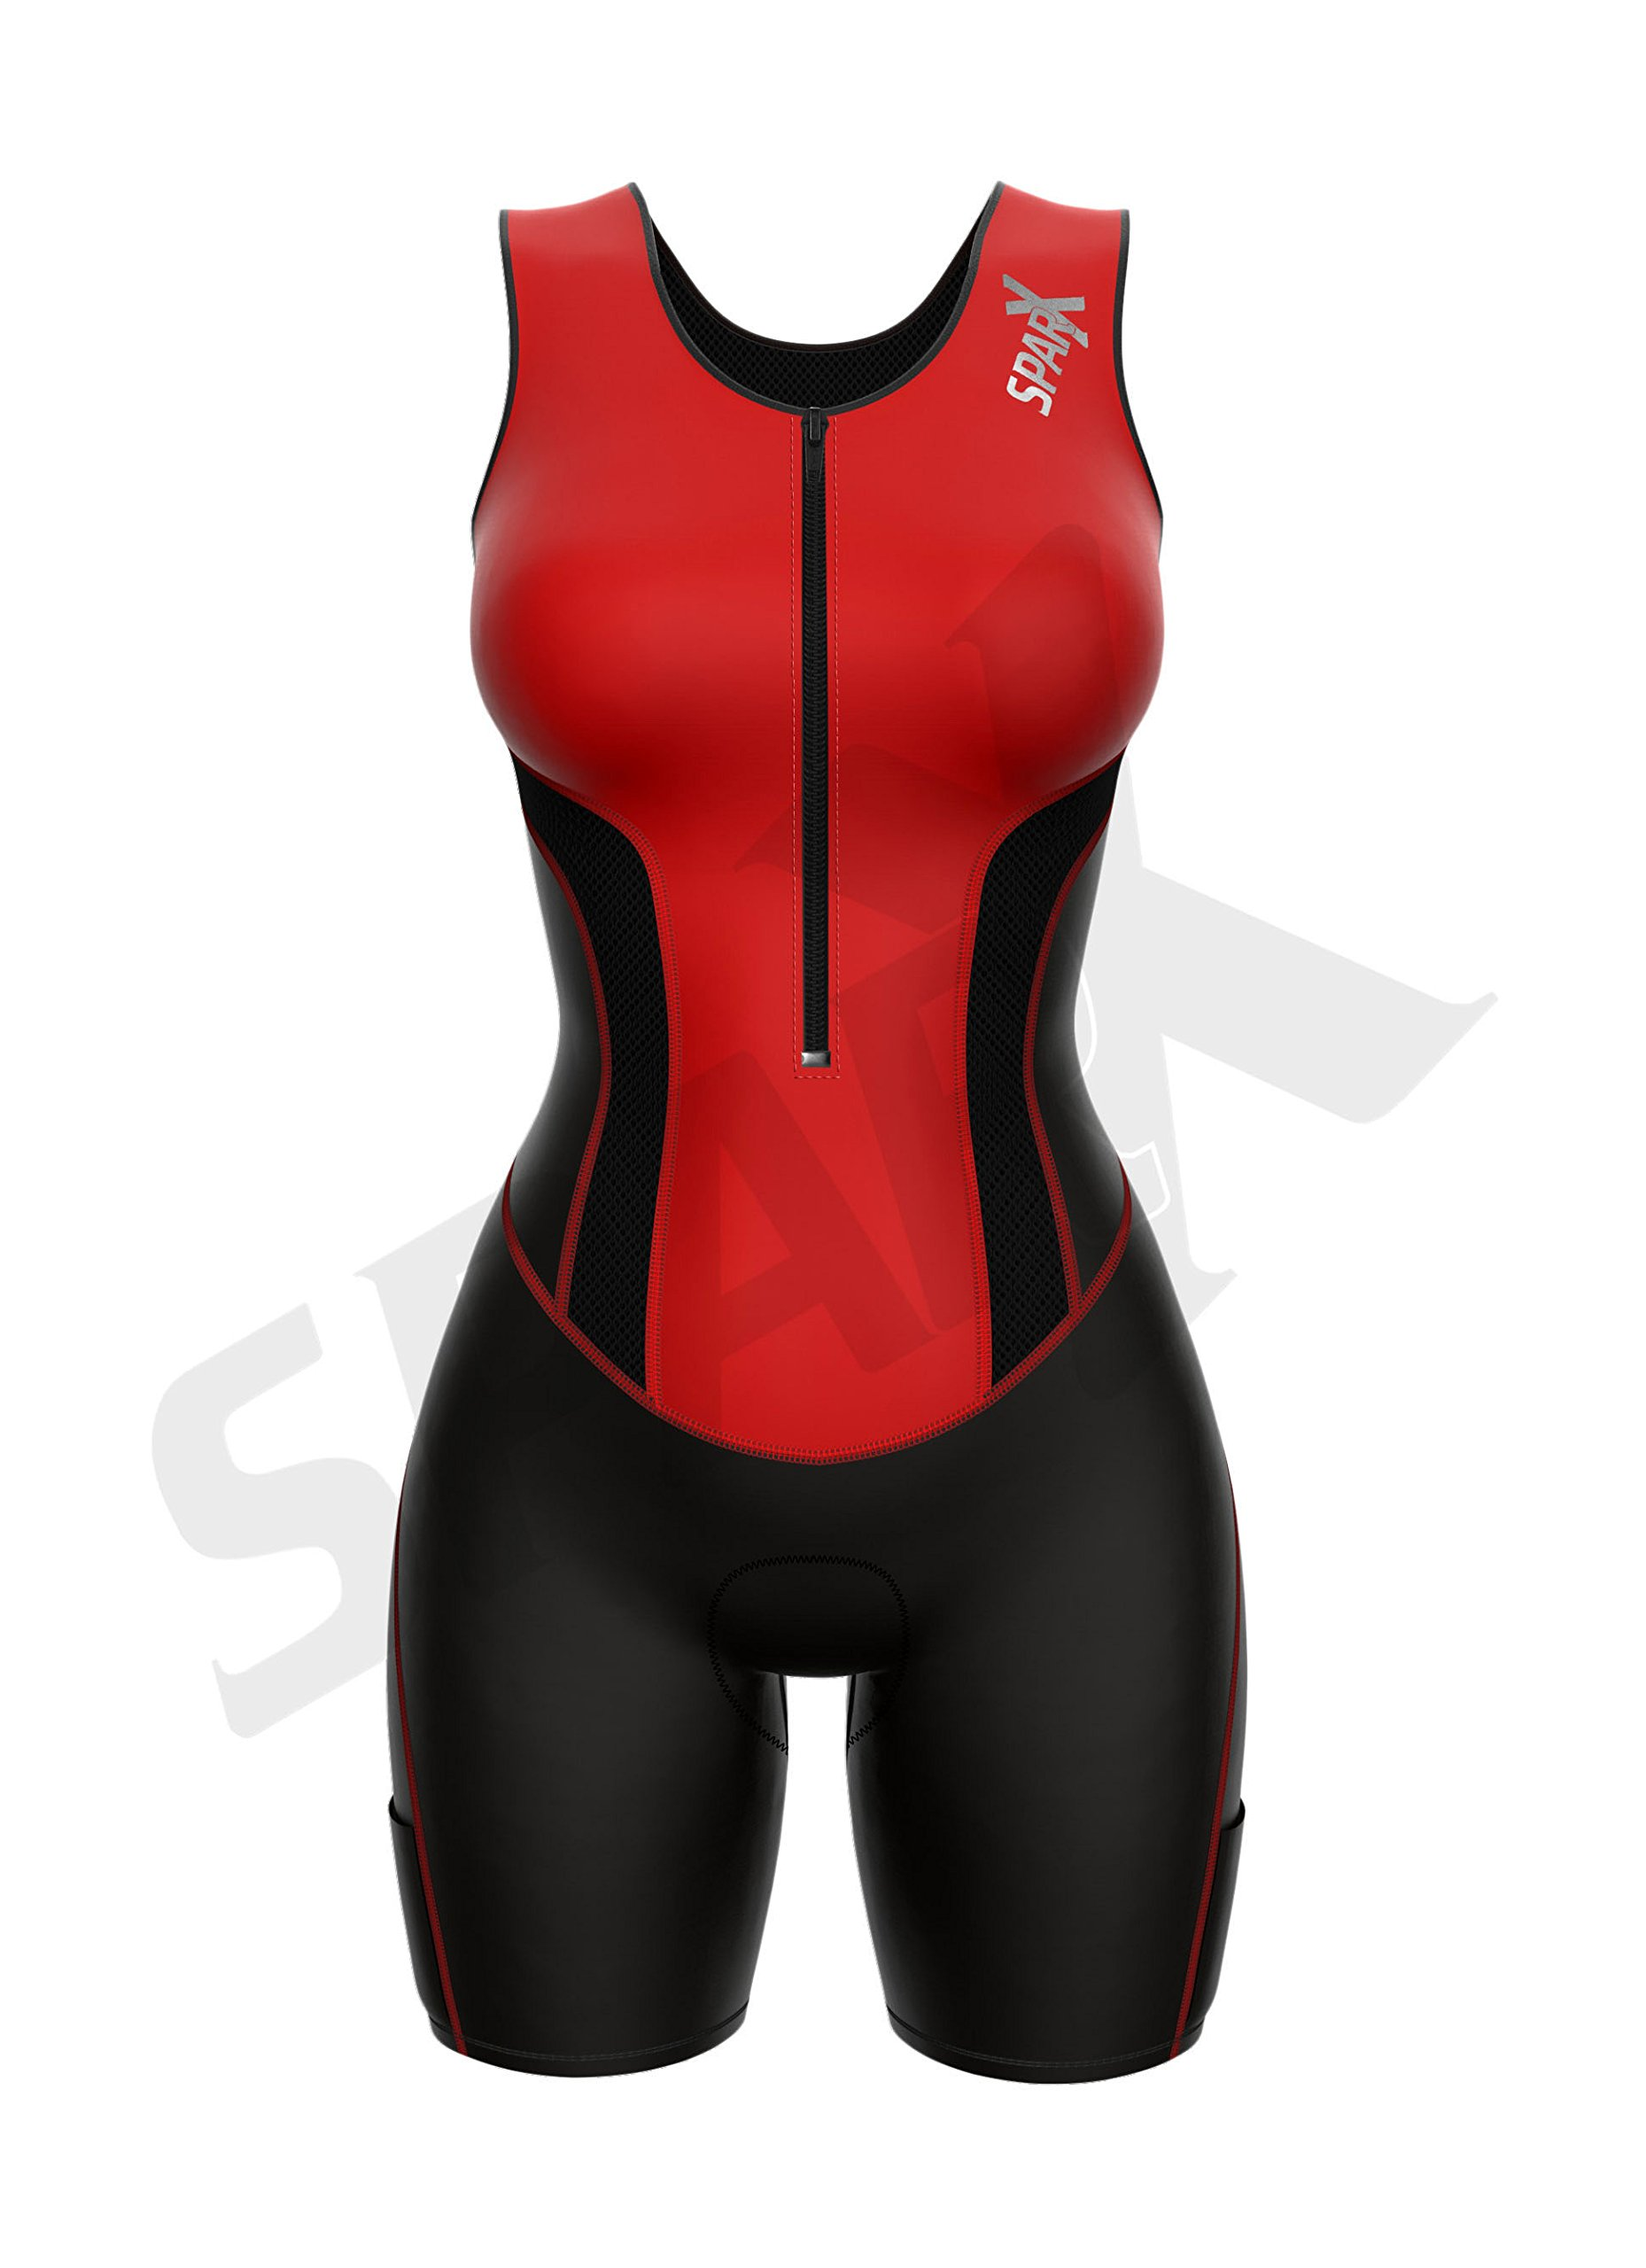 Sparx Women Triathlon Suit Tri Short Racing Cycling Swim Run (Small, Red) by Sparx Sports (Image #2)